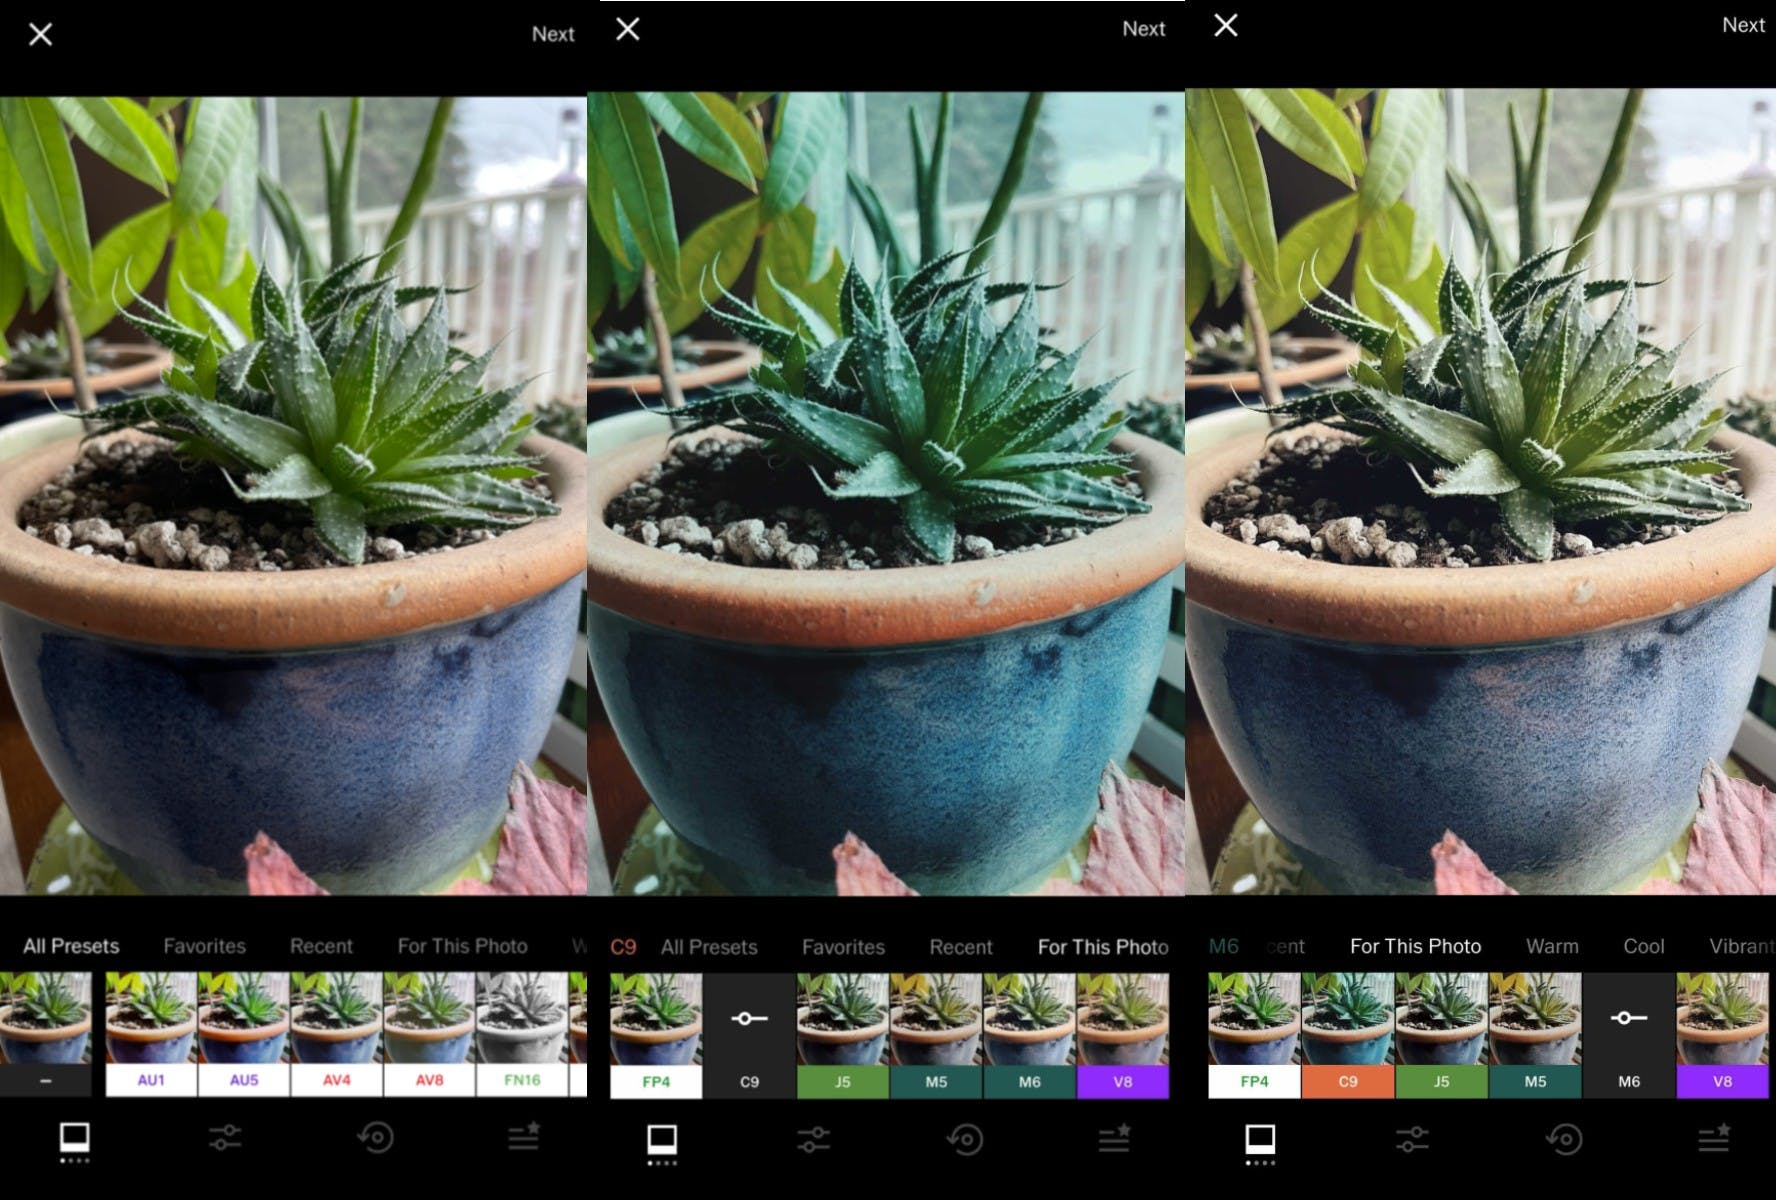 A plant photo being edited in VSCO